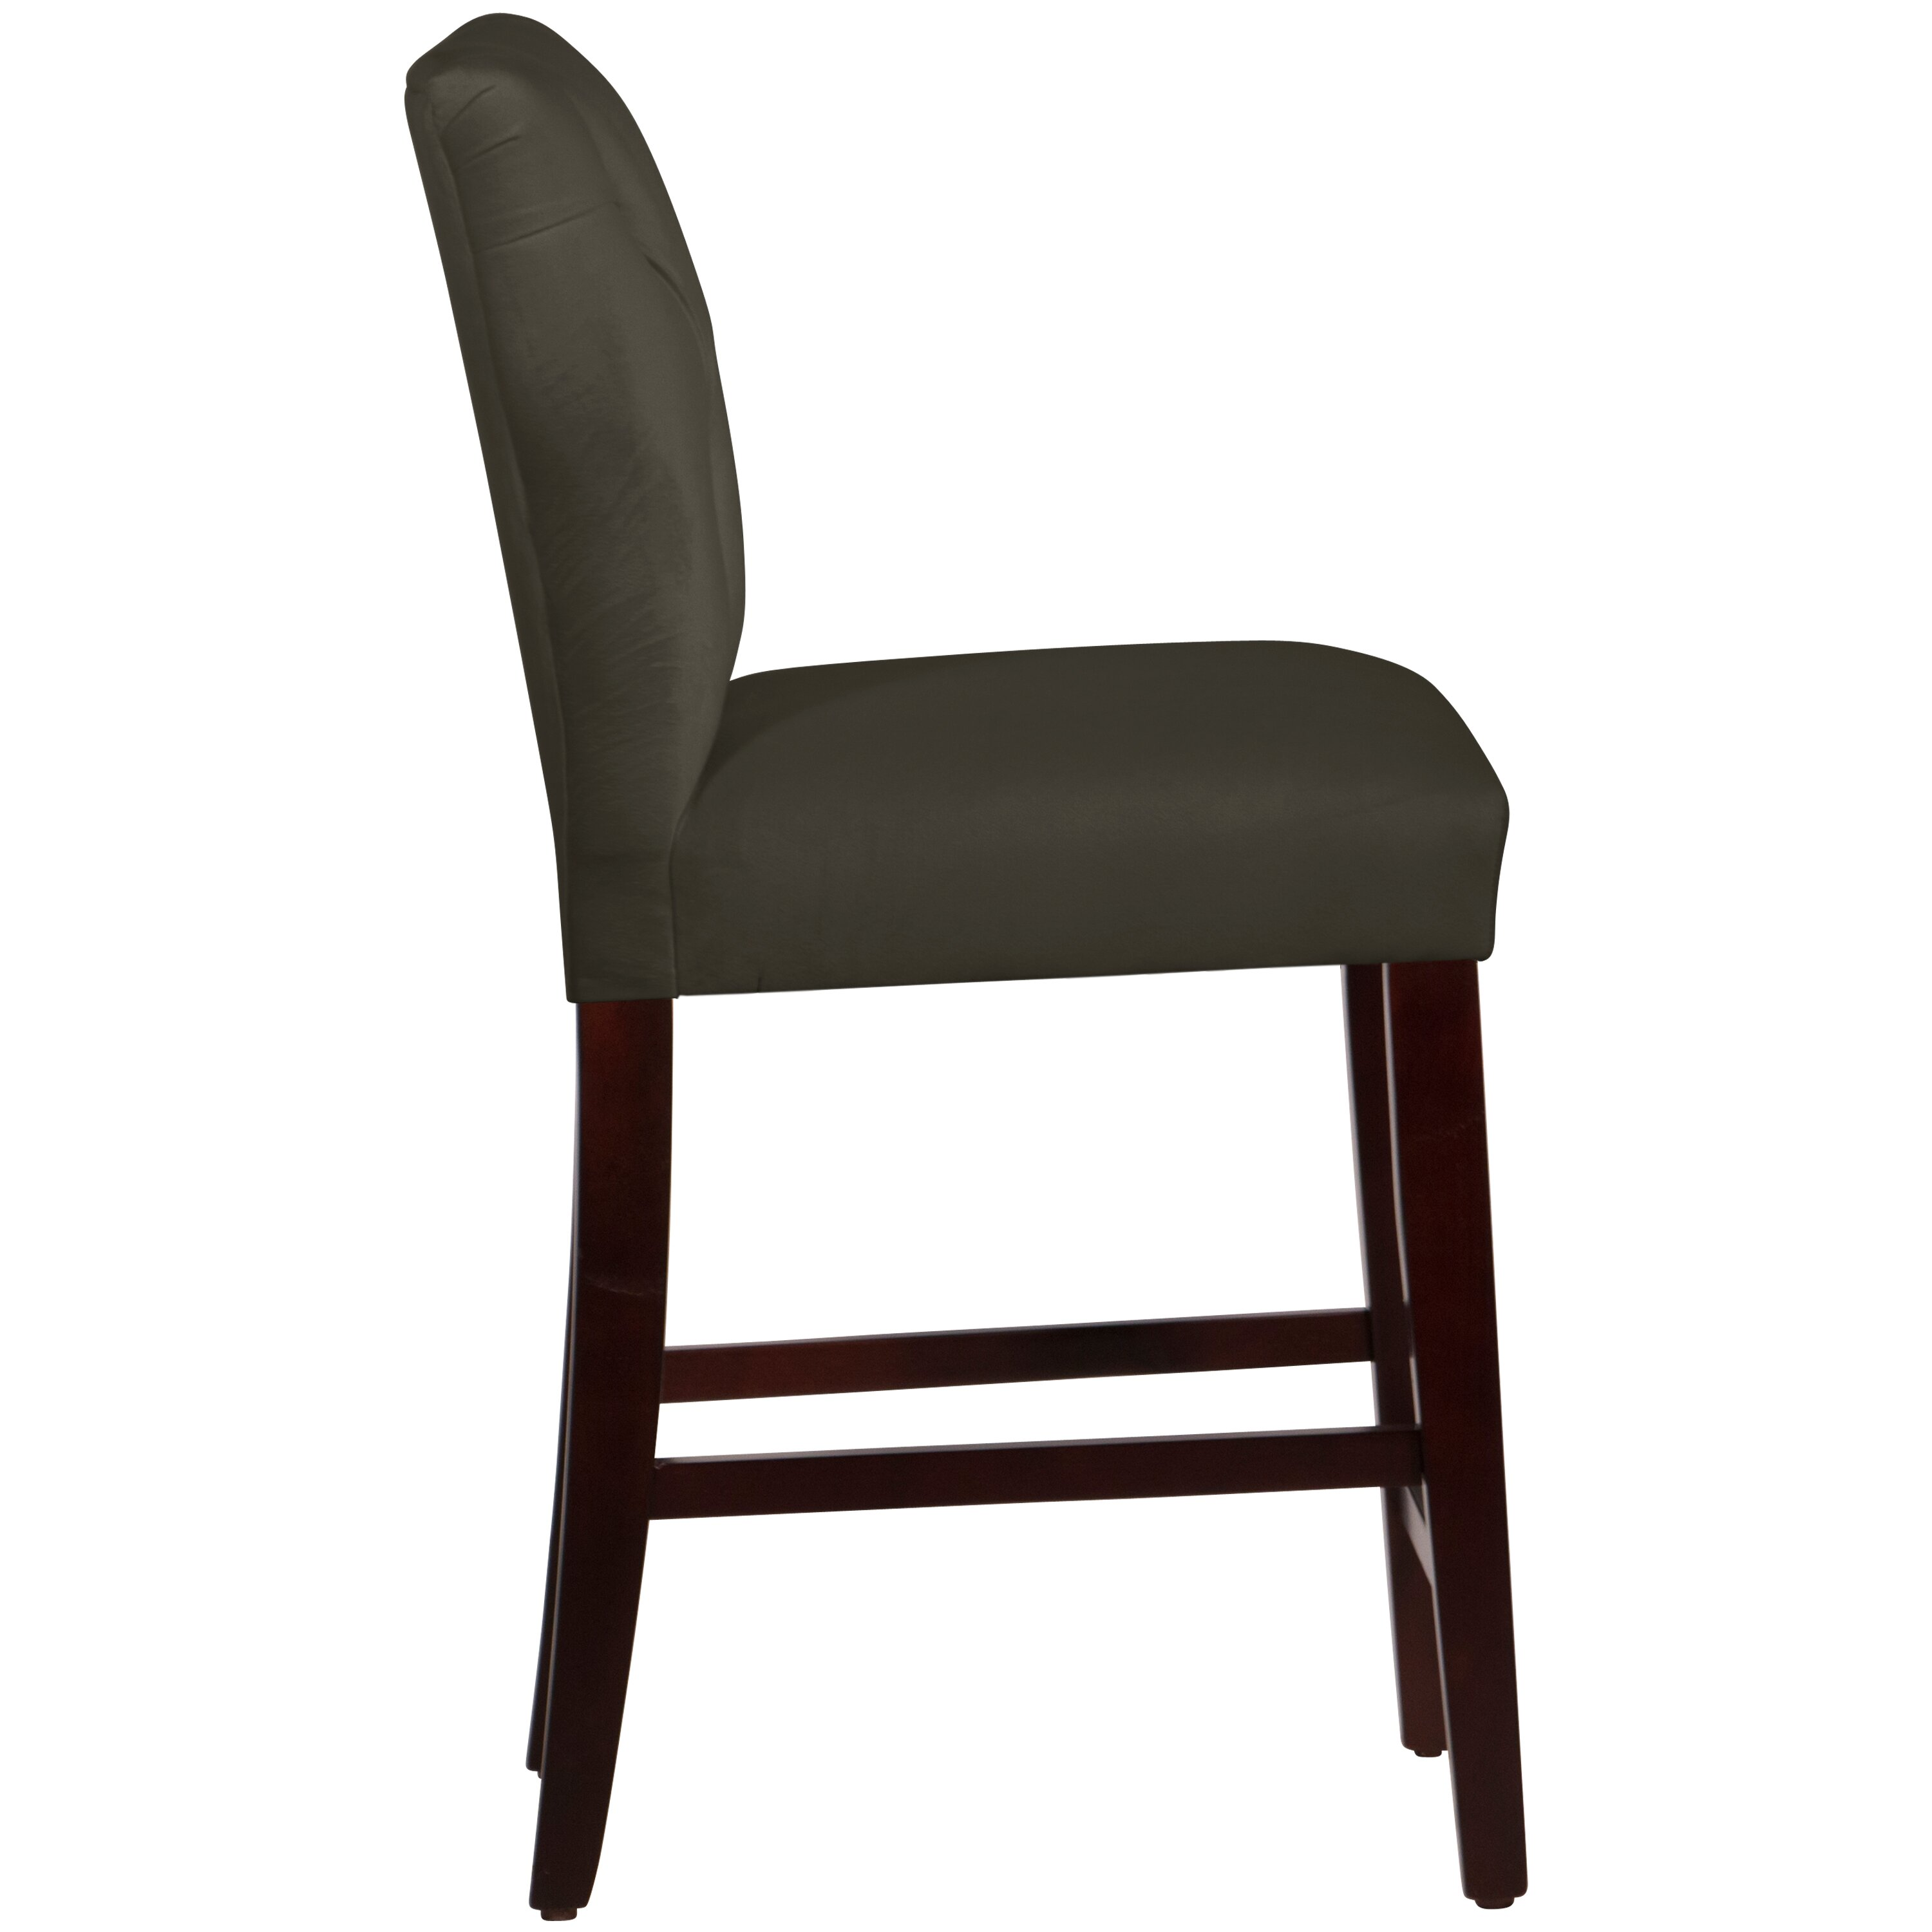 Skyline Furniture 26quot Bar Stool amp Reviews Wayfair : Velvet Tufted Hourglass Bar Stool 65 7ESPVLV from www.wayfair.com size 3000 x 3000 jpeg 353kB